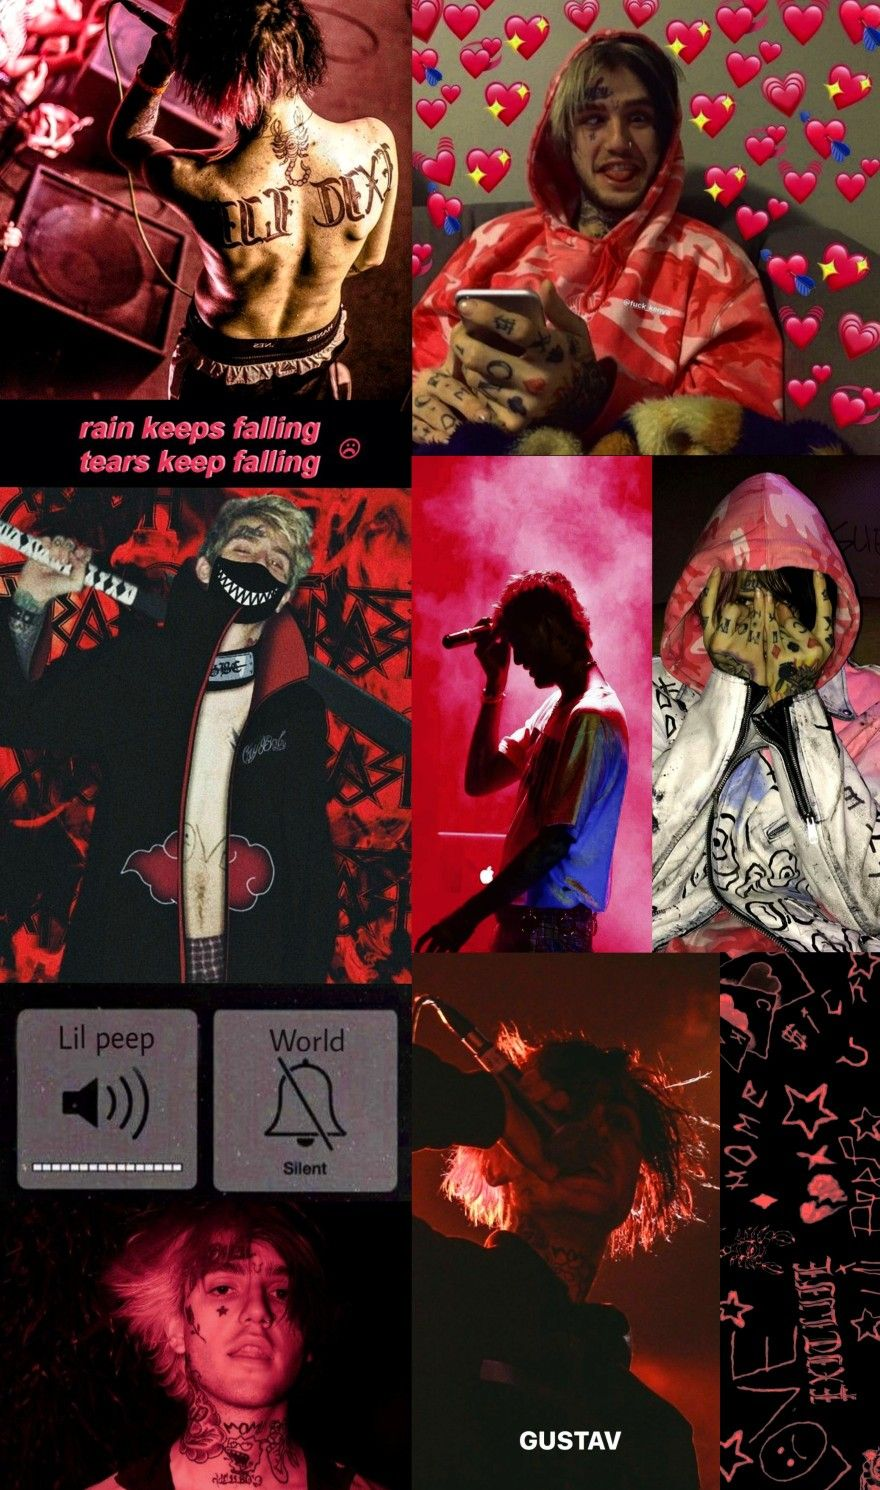 Lilpeep Red Rip Lilpeepforever Collage Gustav Lil Peep